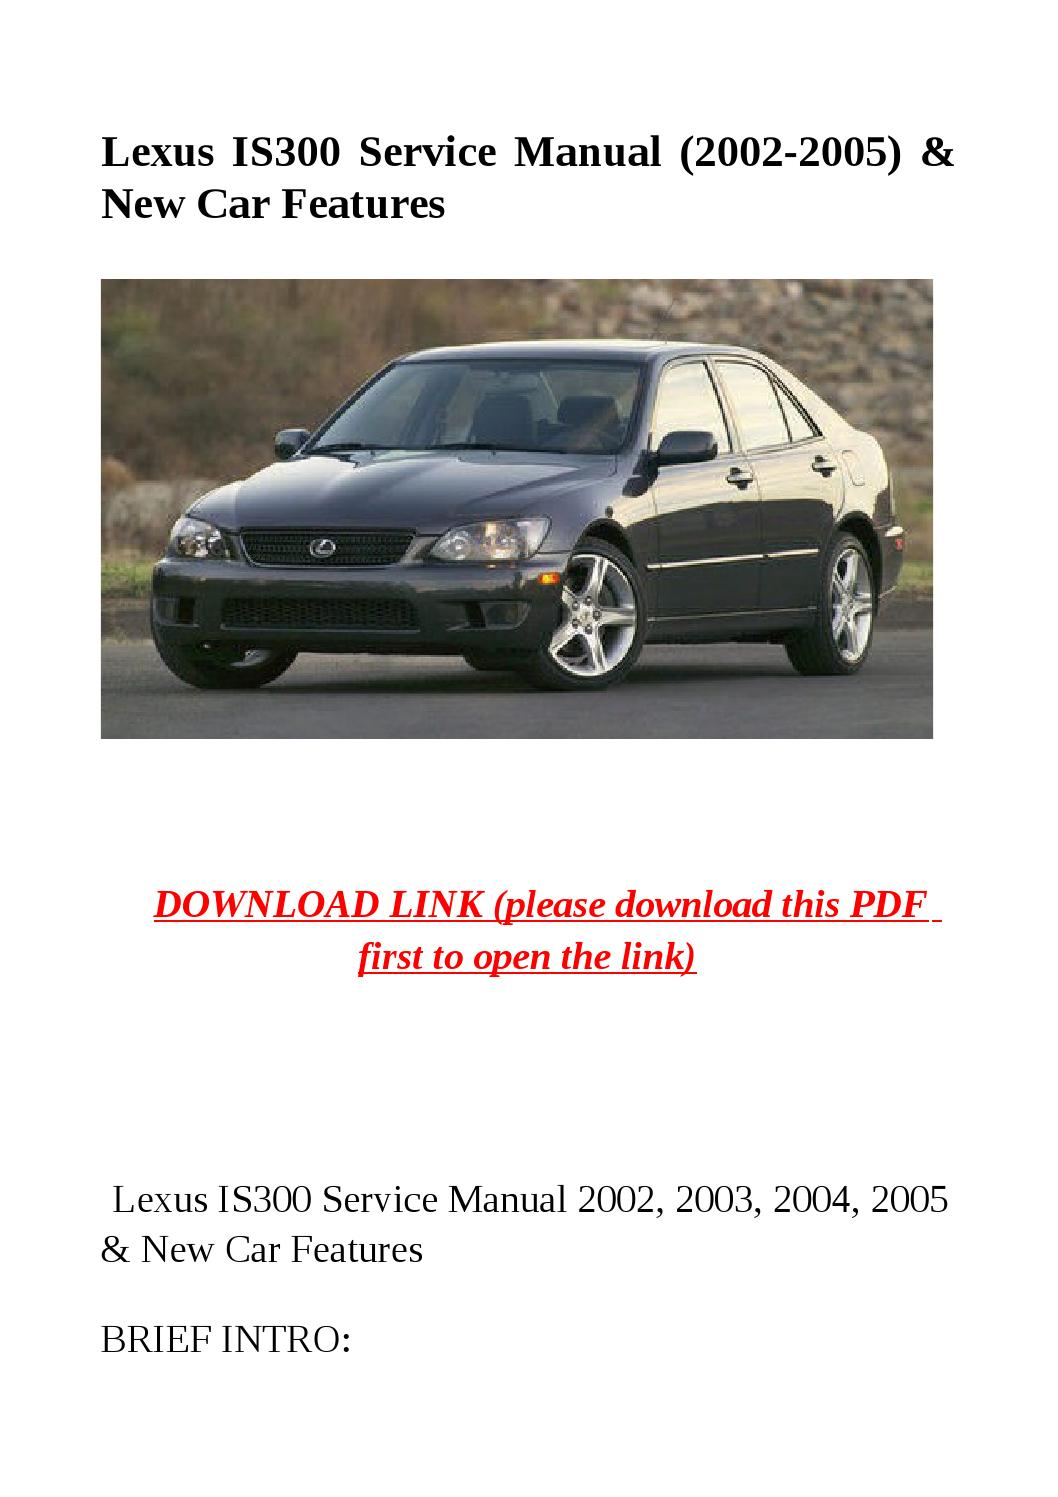 Lexus is300 service manual (2002 2005) & new car features by Mary Jane -  issuu